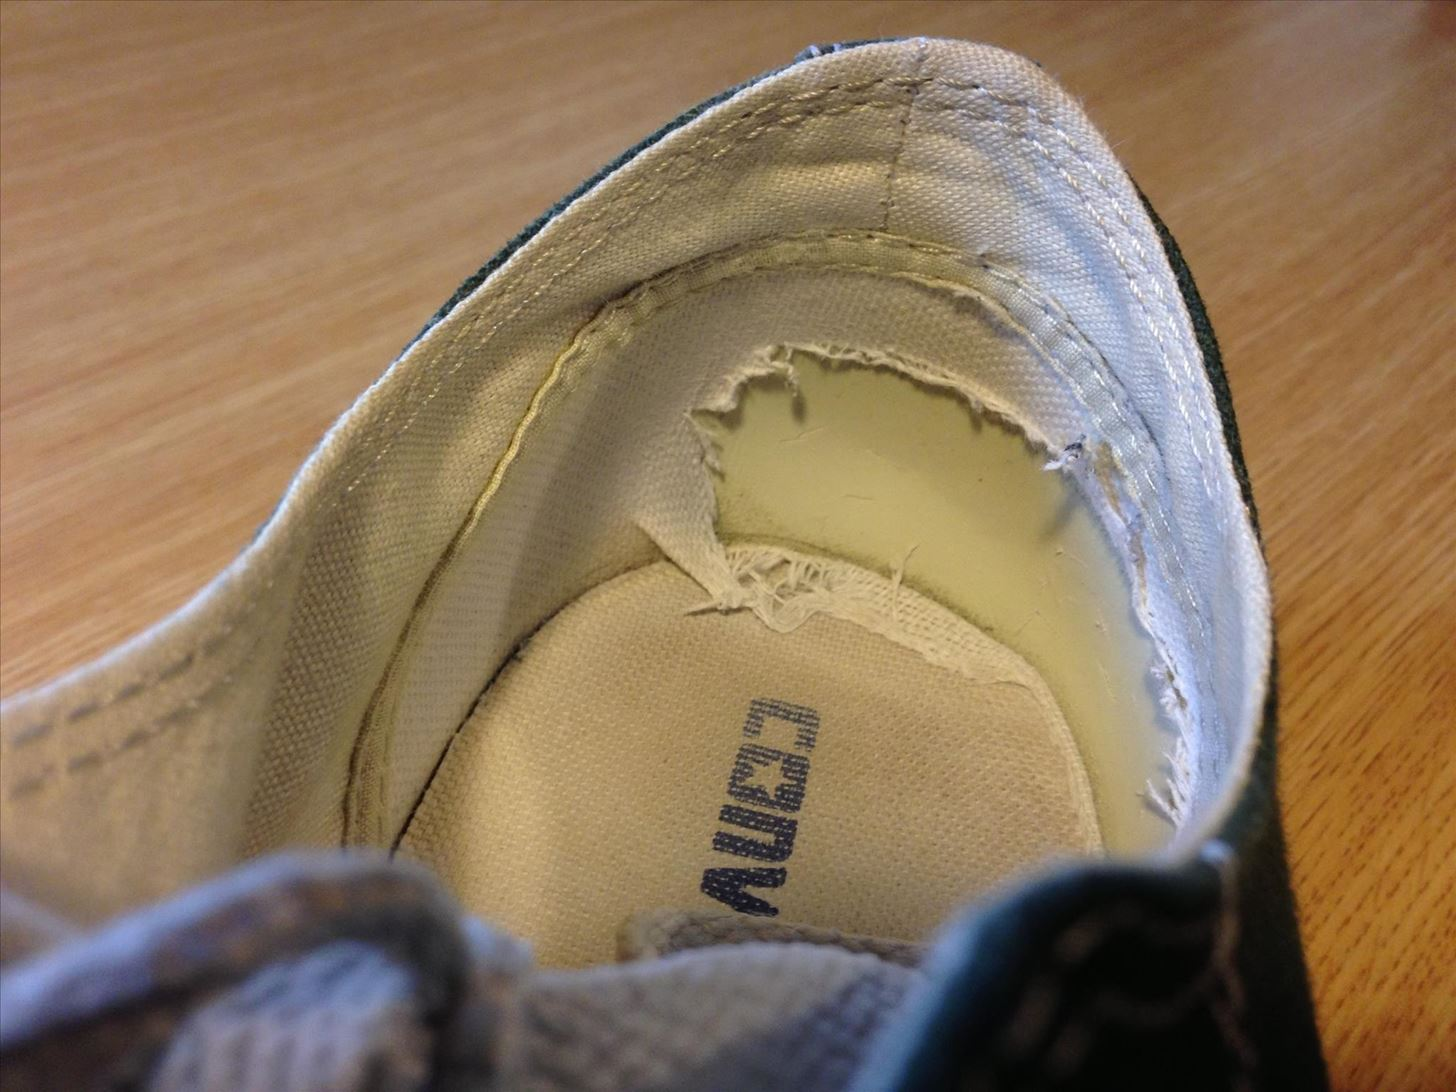 e4a8cb3d032c How to Fix the Worn Out Heel Linings in Your Ragged Shoes    Sneakers—MacGyver Style! « MacGyverisms    WonderHowTo